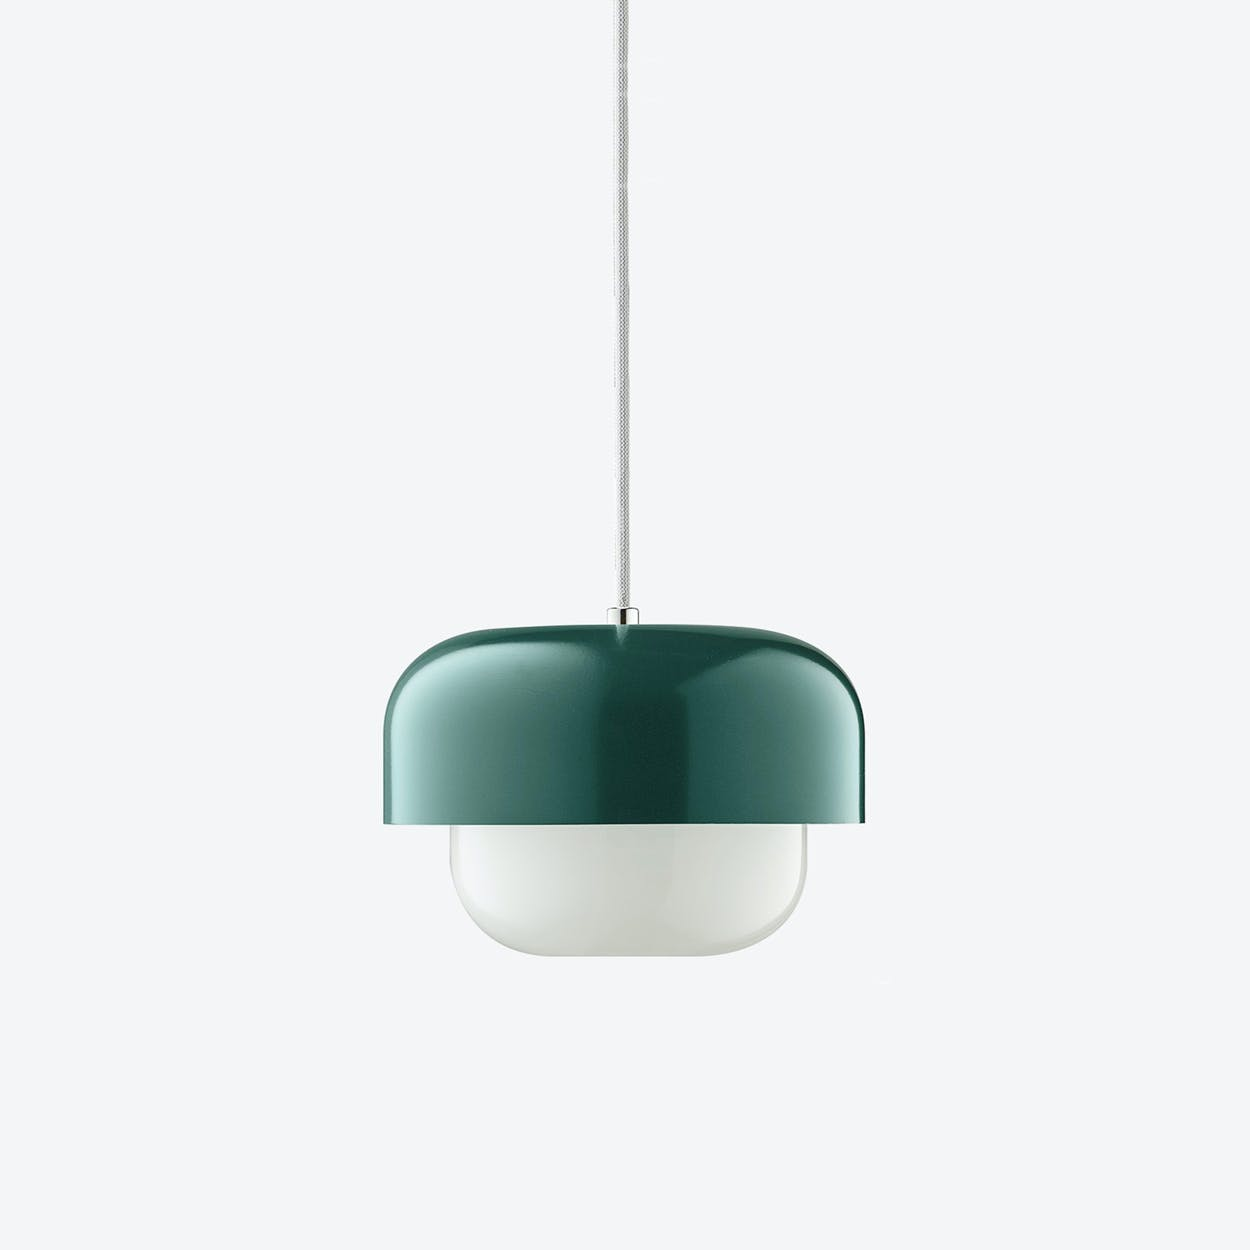 Haipot Pendant Lamp in Matzu Dark Green